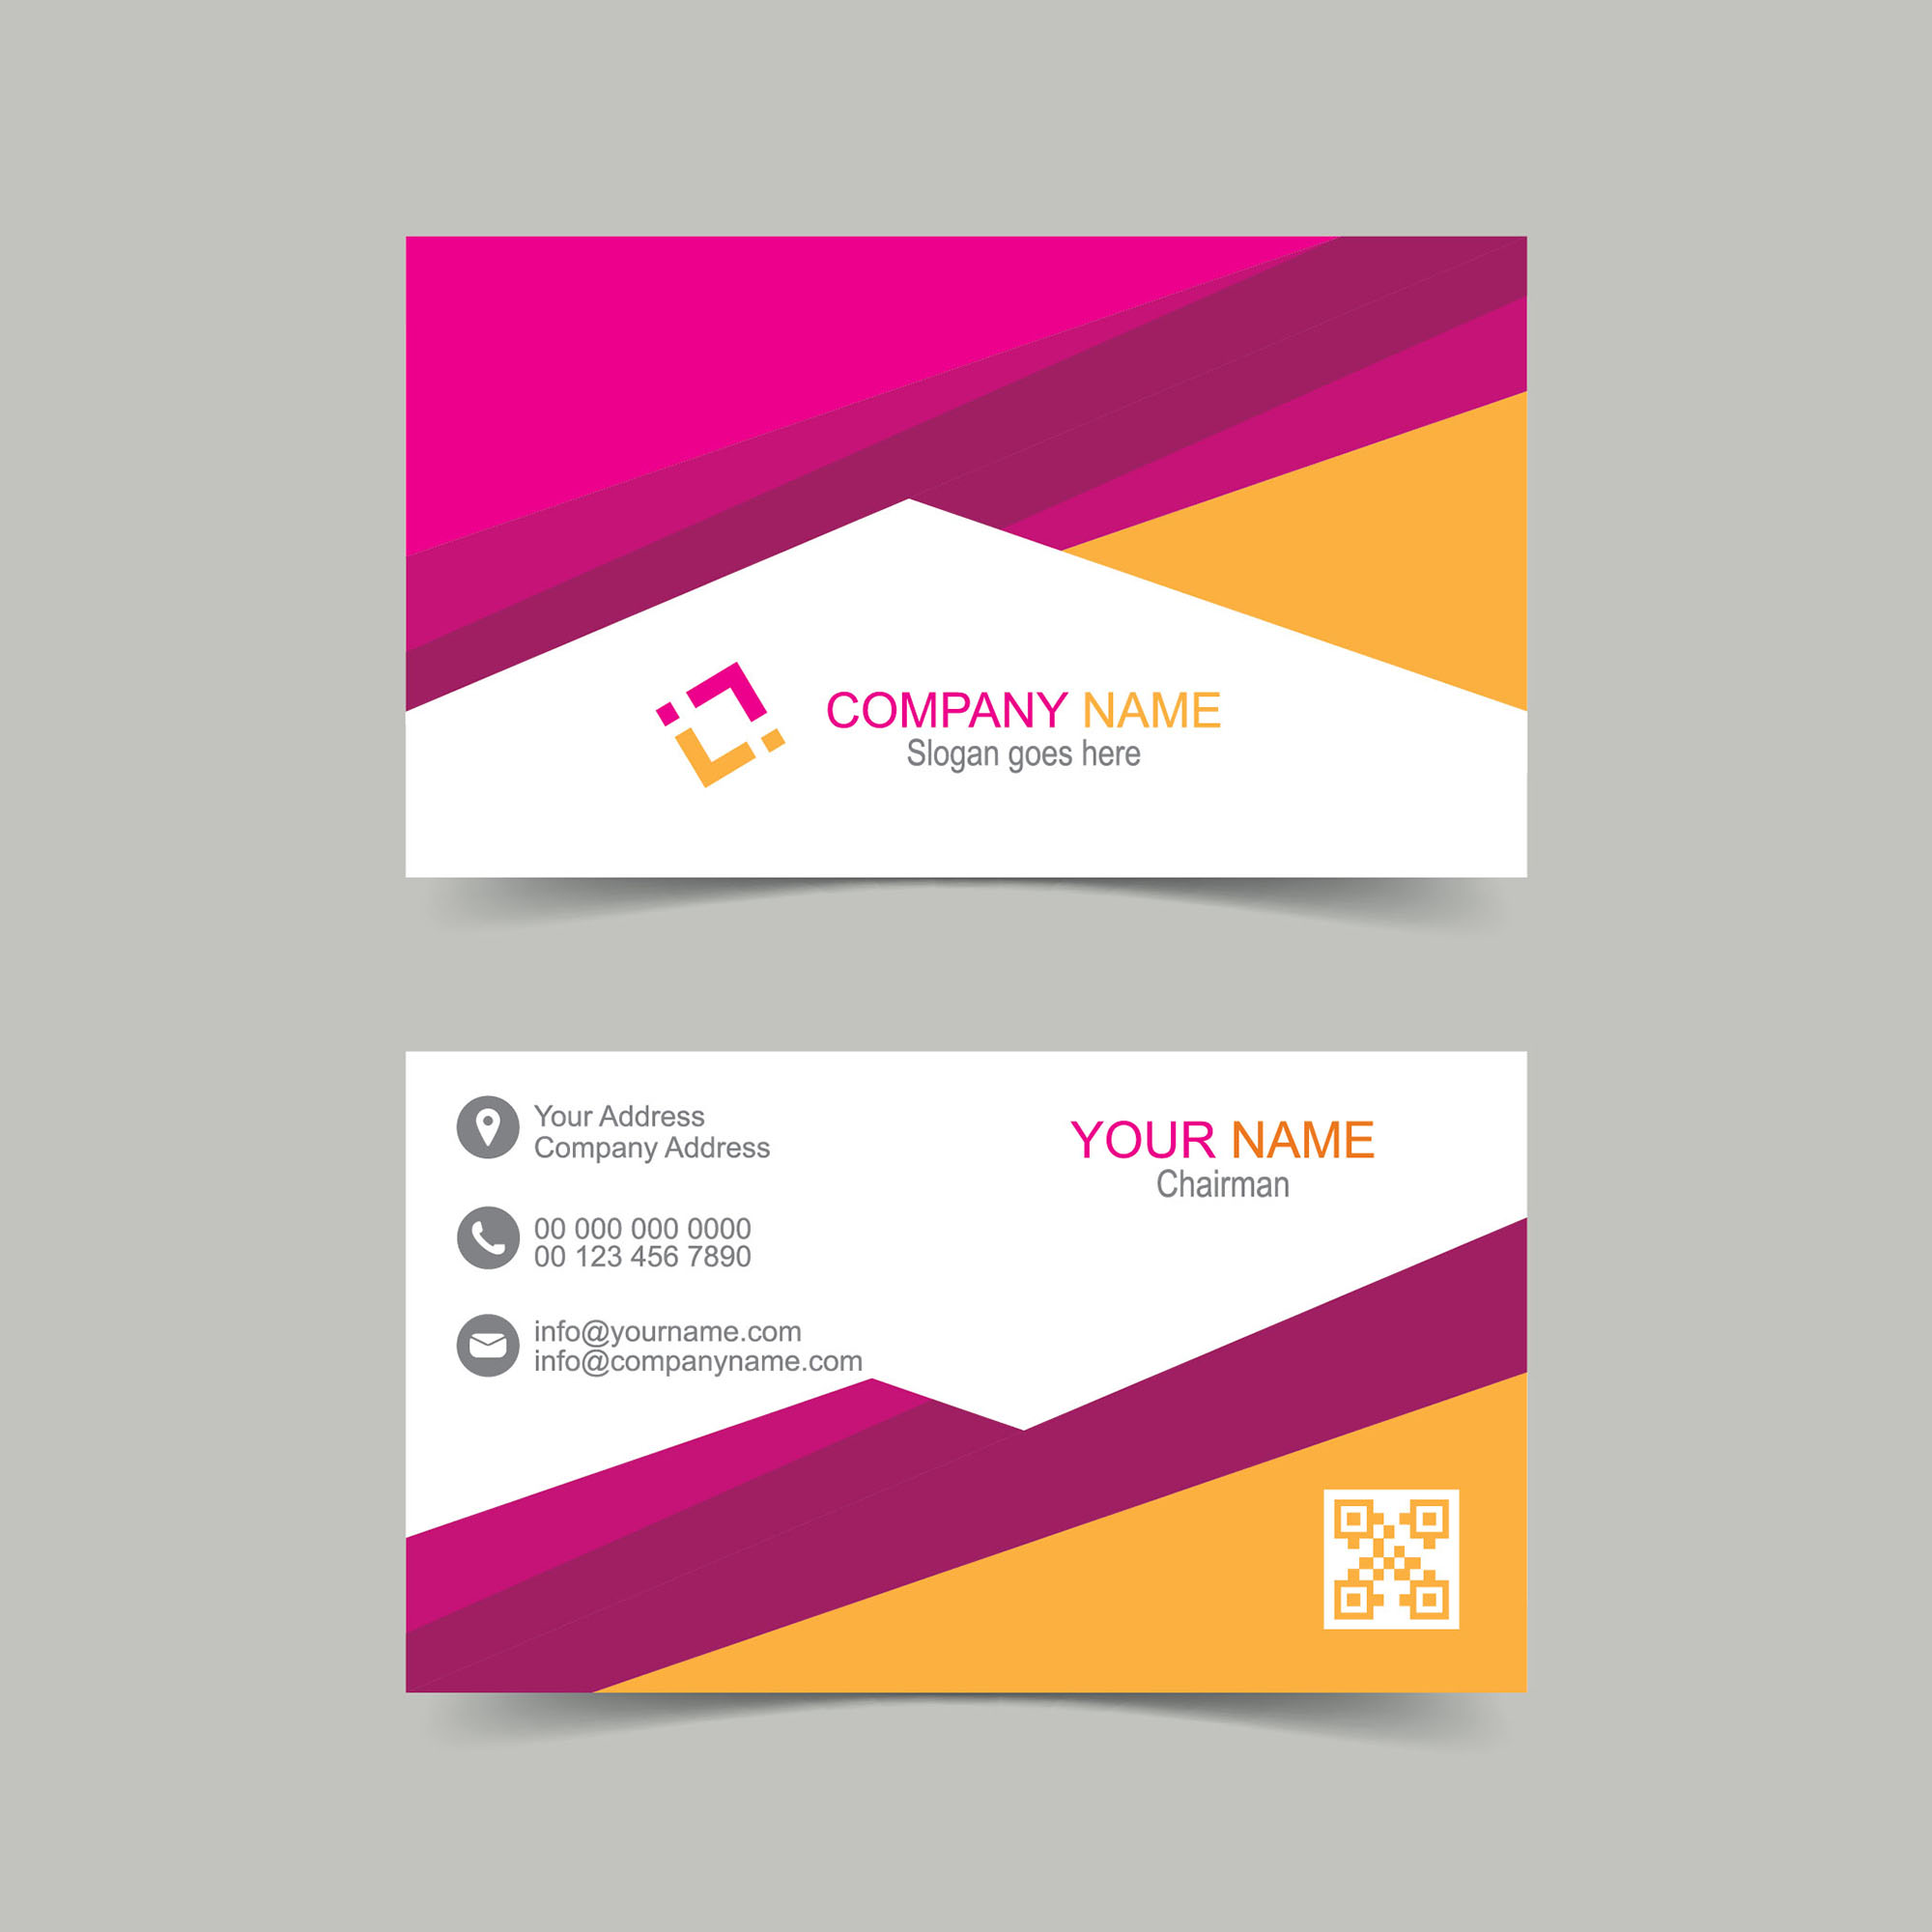 Vector business card design free download wisxi business card business cards business card design business card template design templates fbccfo Choice Image